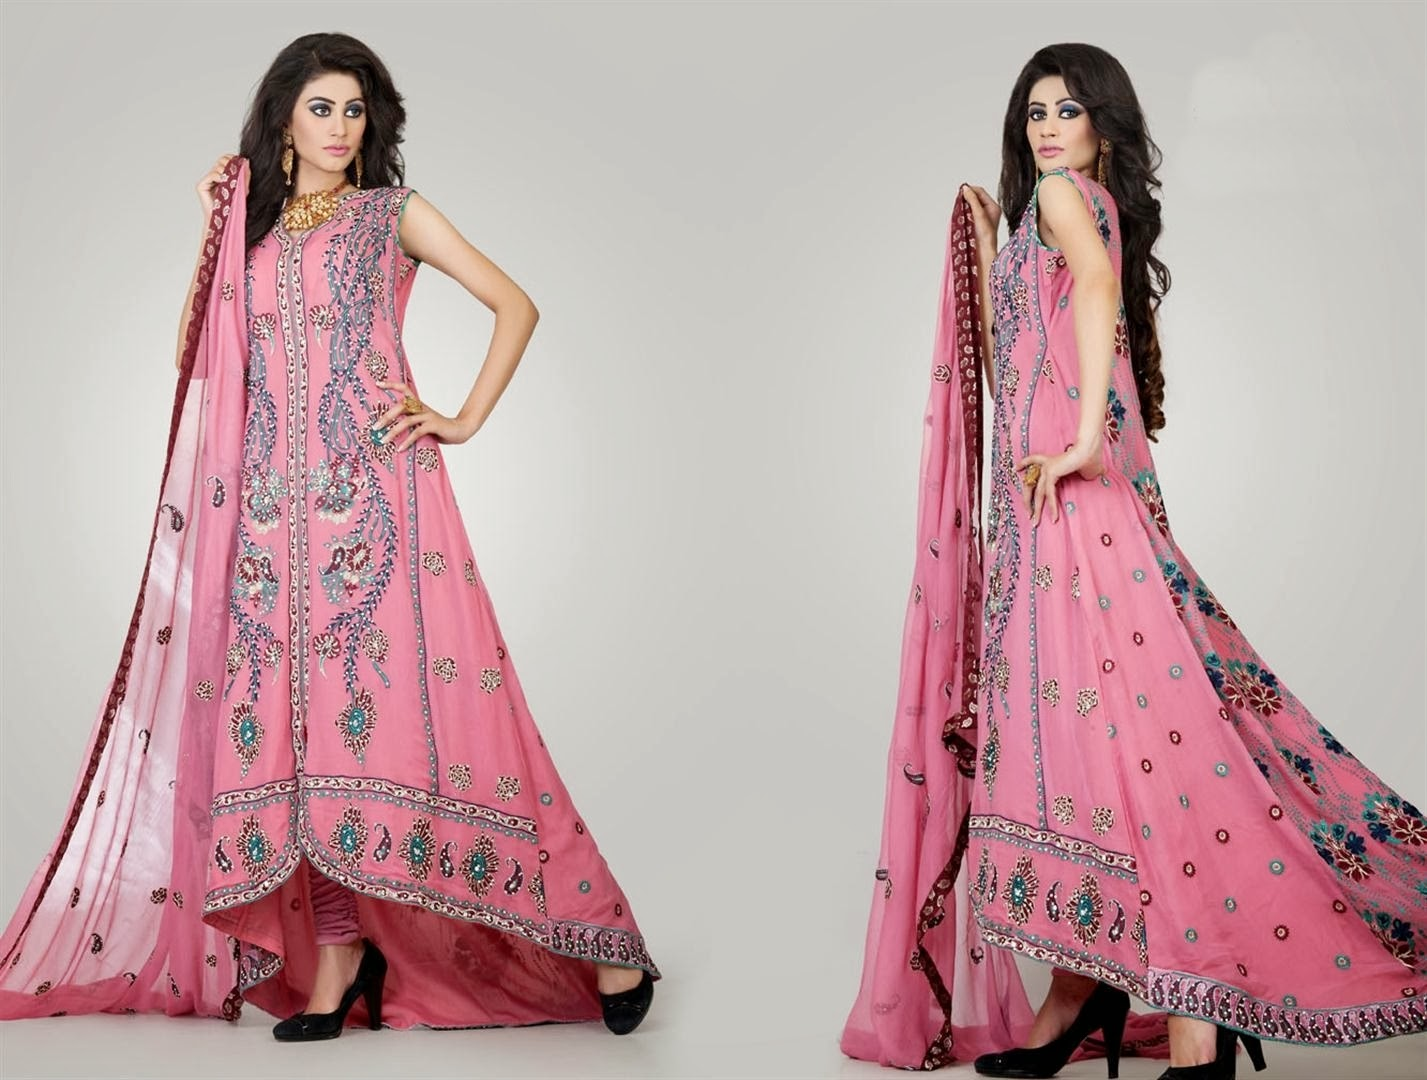 Shalwar Kameez- add the stylish outfit to your Diwali fashion list